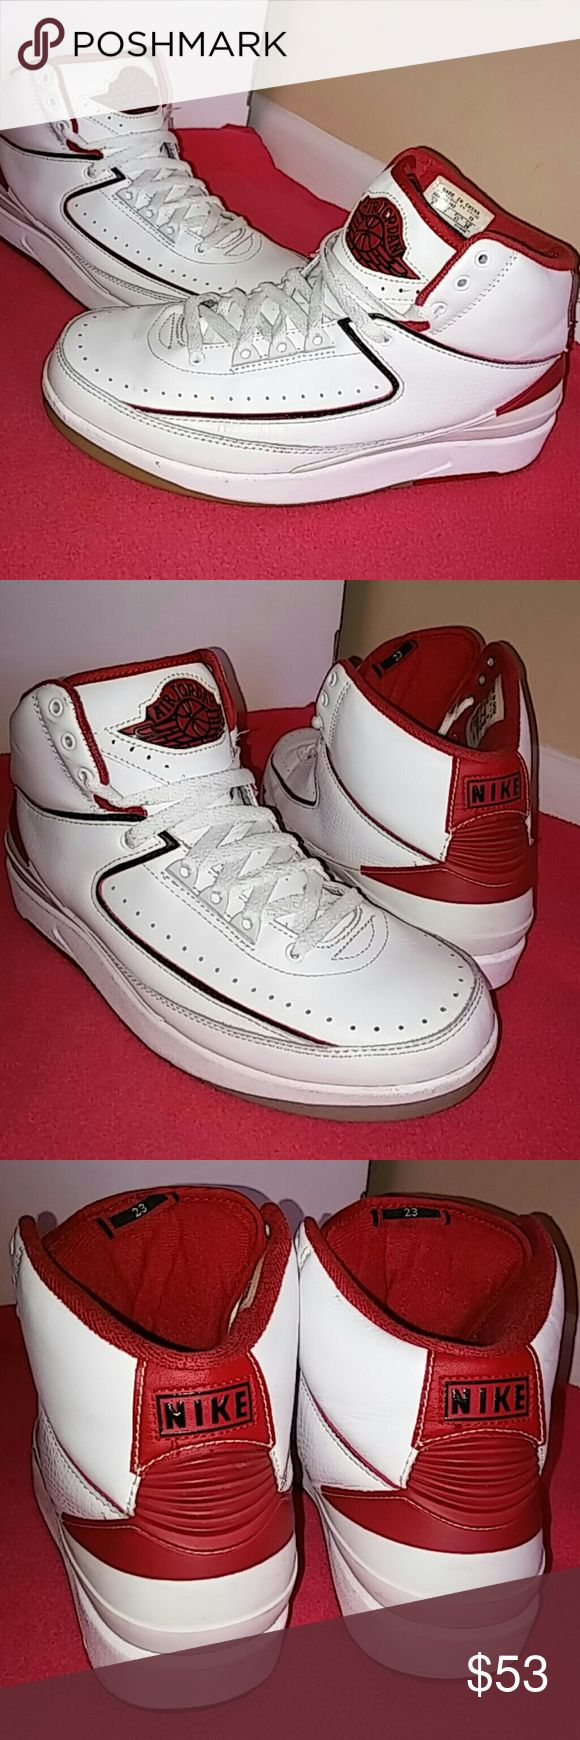 Nike Air Jordan Retro 2 Mid Top White Varsity Red. 👍Very nice Retro 2....In awesome shape and solid in condition. Rated 8/10...Its flawless...showing minimal signs of use. Nike Shoes Sneakers